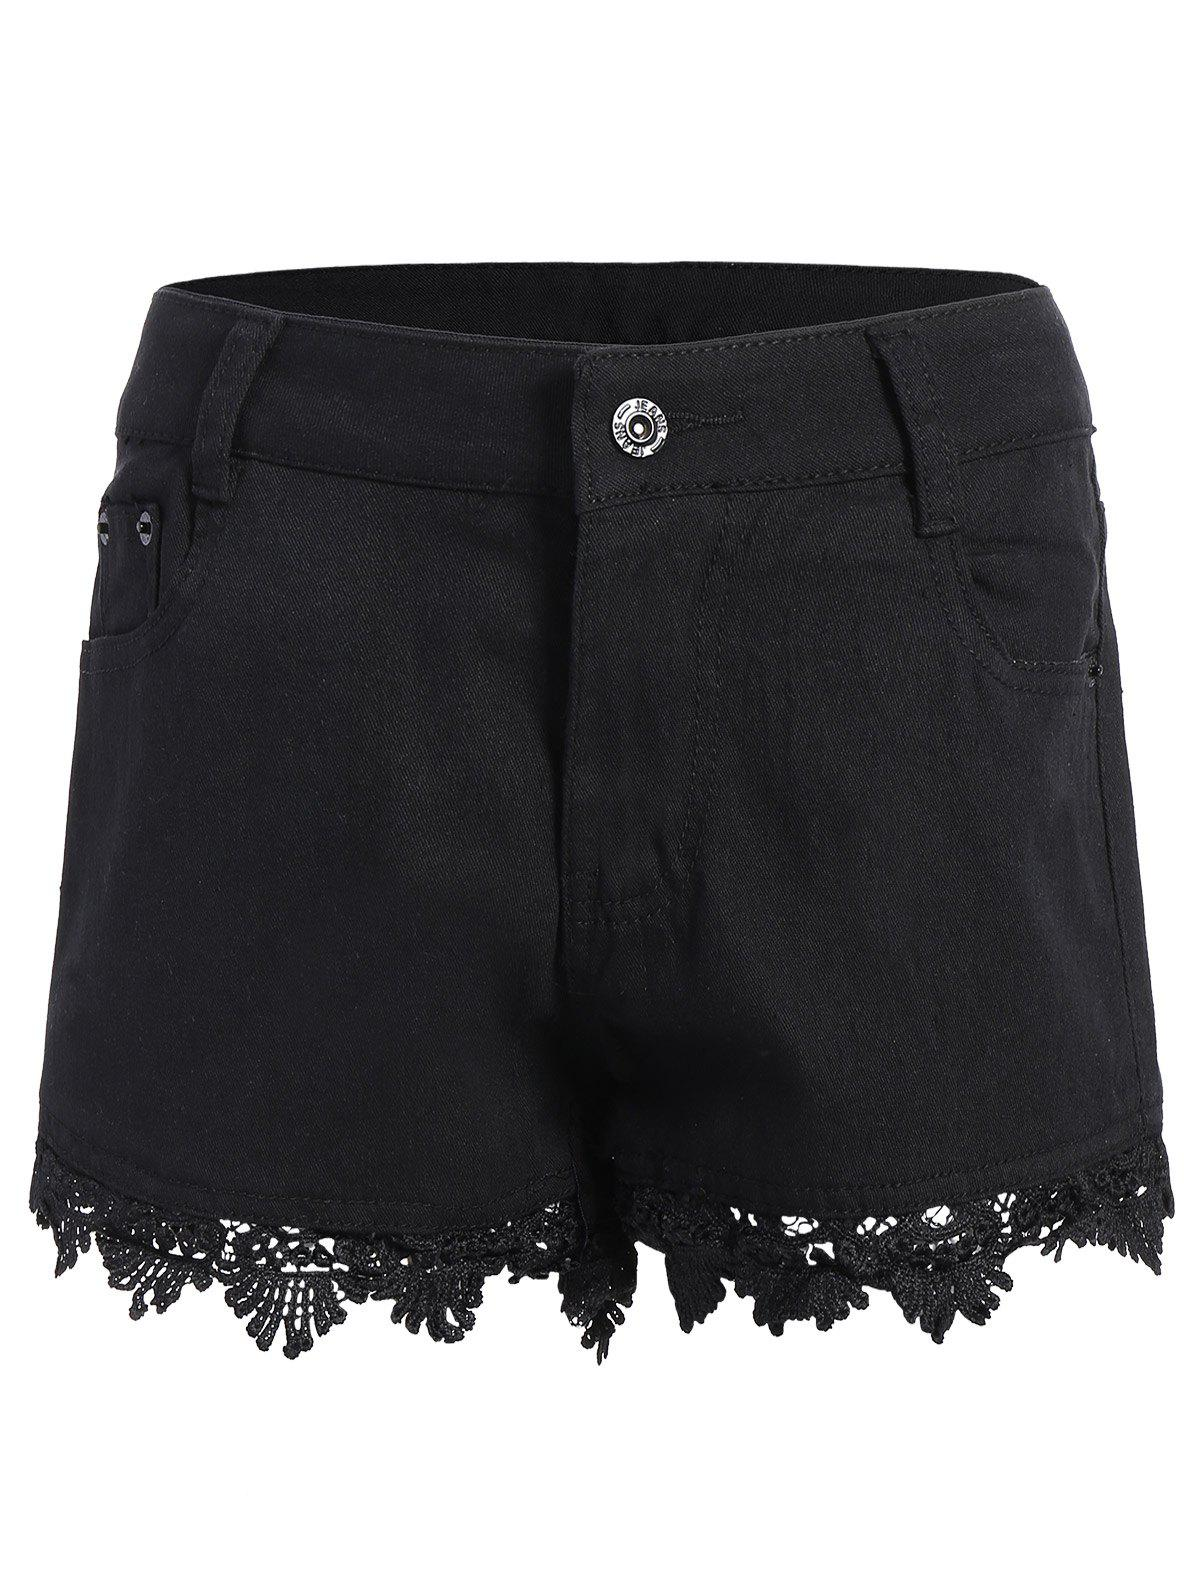 Lace Trim Denim Shorts - BLACK XL